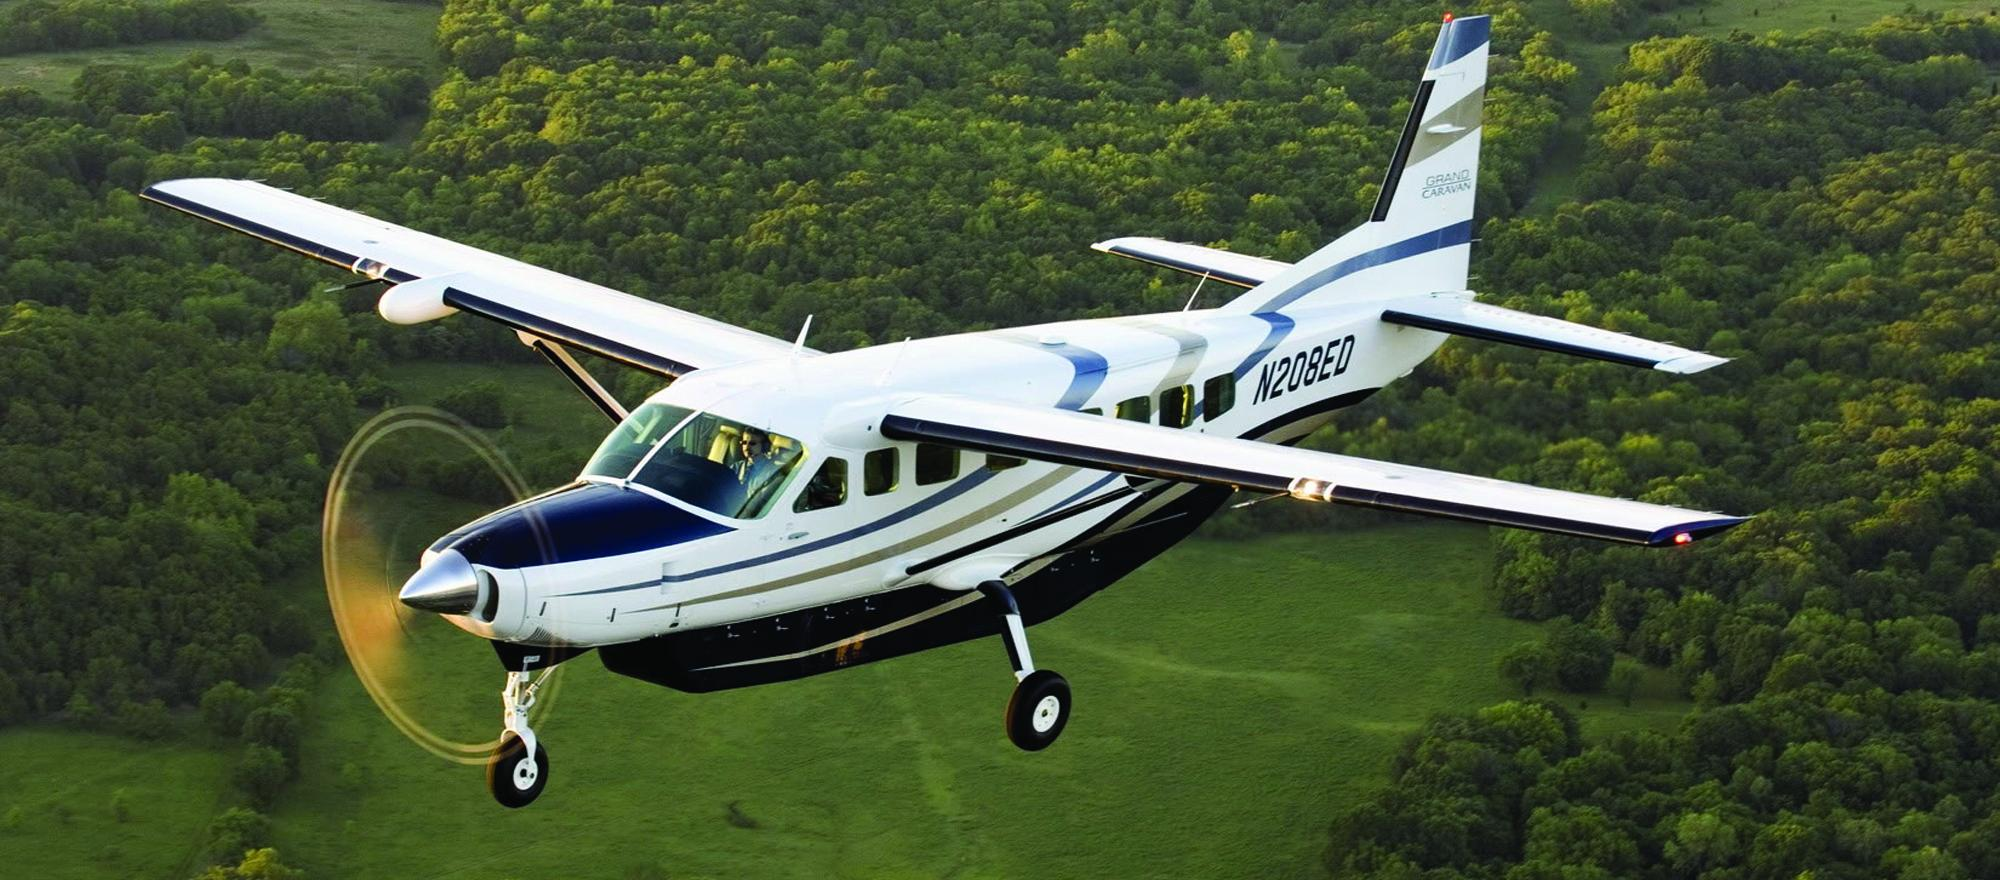 The Cessna Caravan is now being marketed under the Textron Aviation umbrella, which includes Cessna and Beechcraft products.